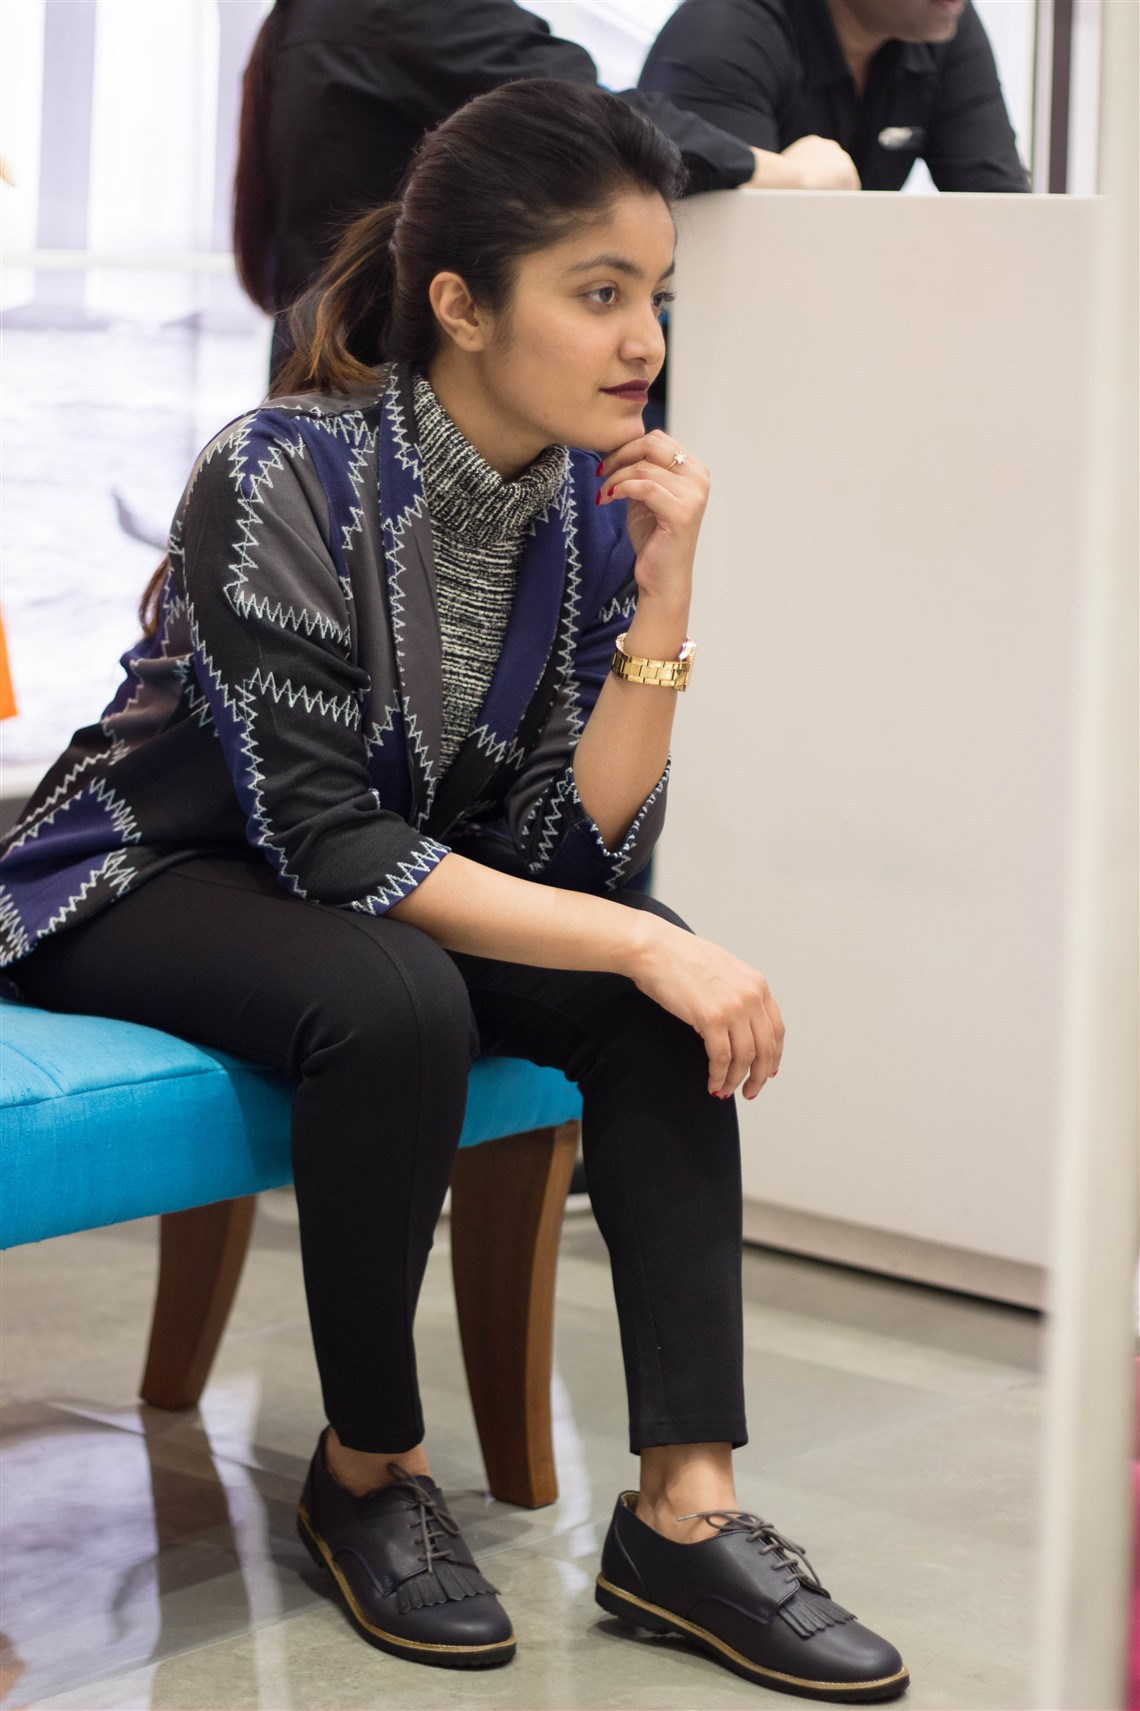 smart formals outfits by fashion blogger princy mascarenhas the jeromy diaries